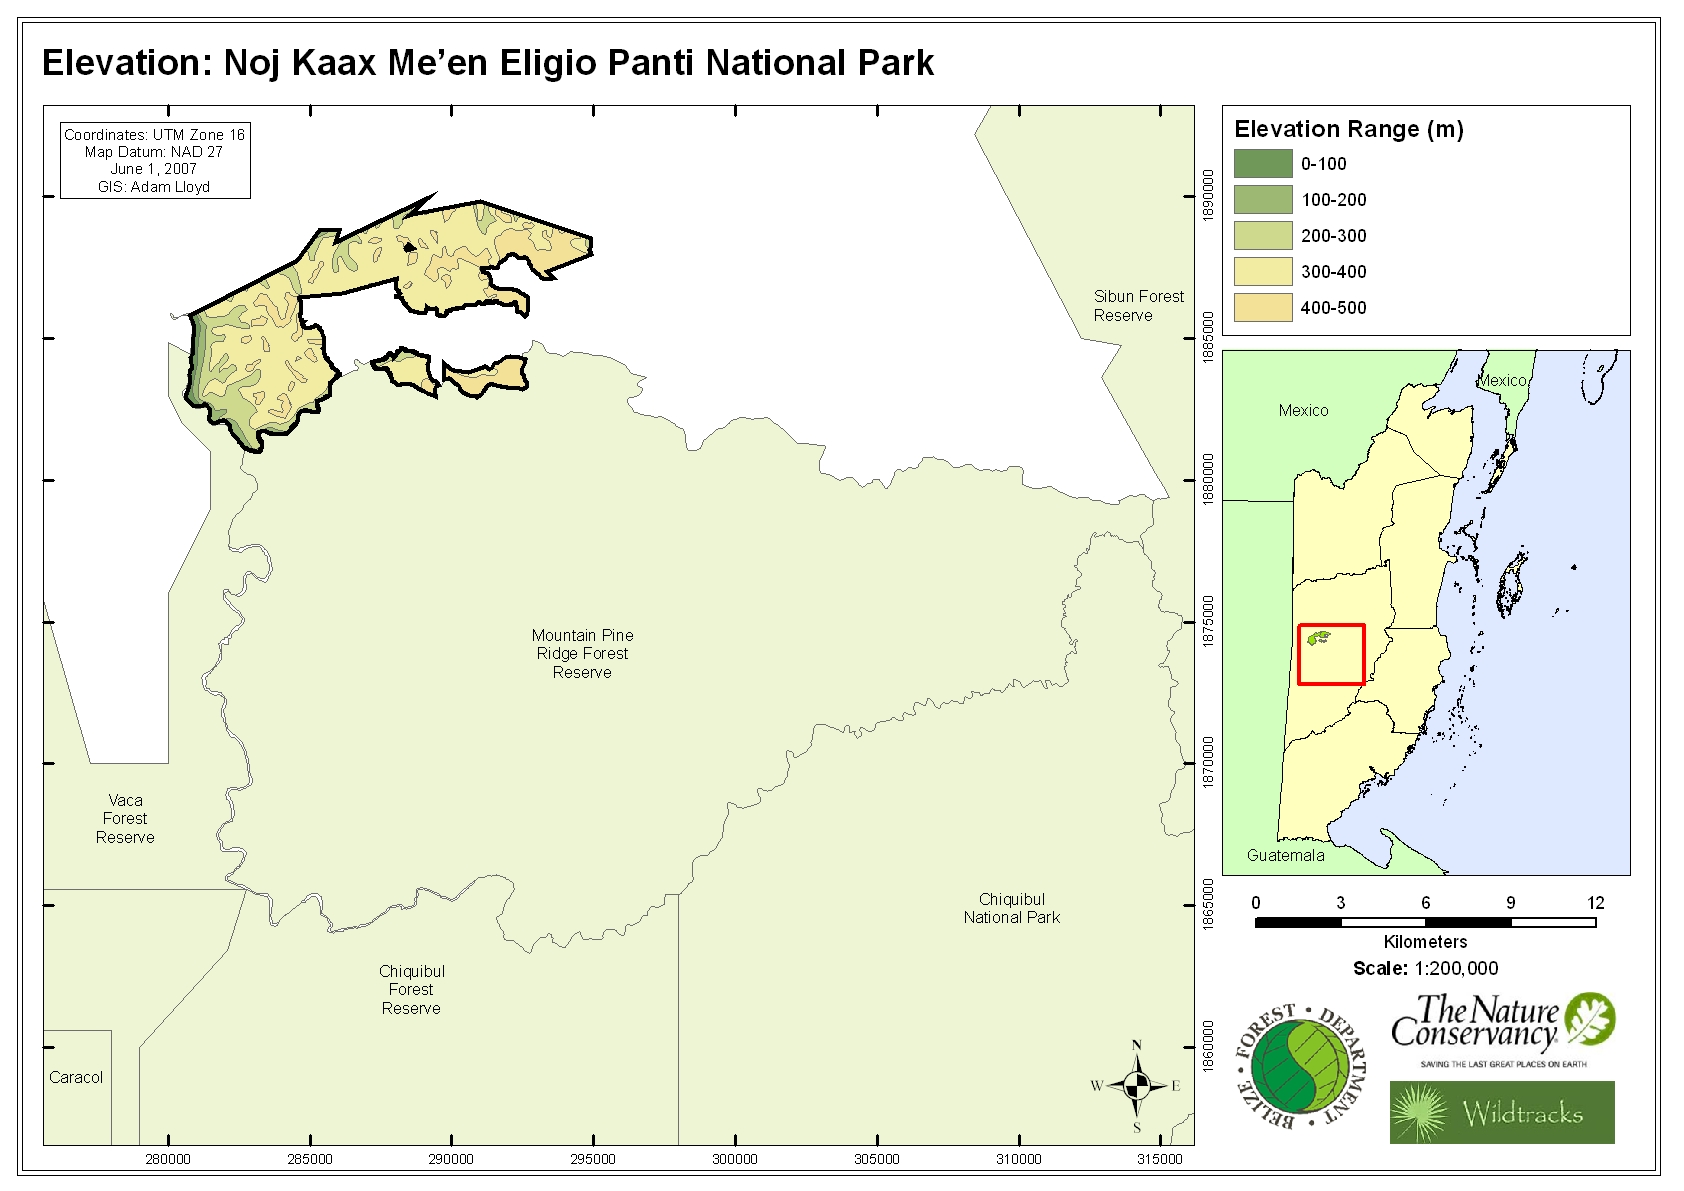 Elevation: Noj Kaax Me'en Eligio Panti National Park